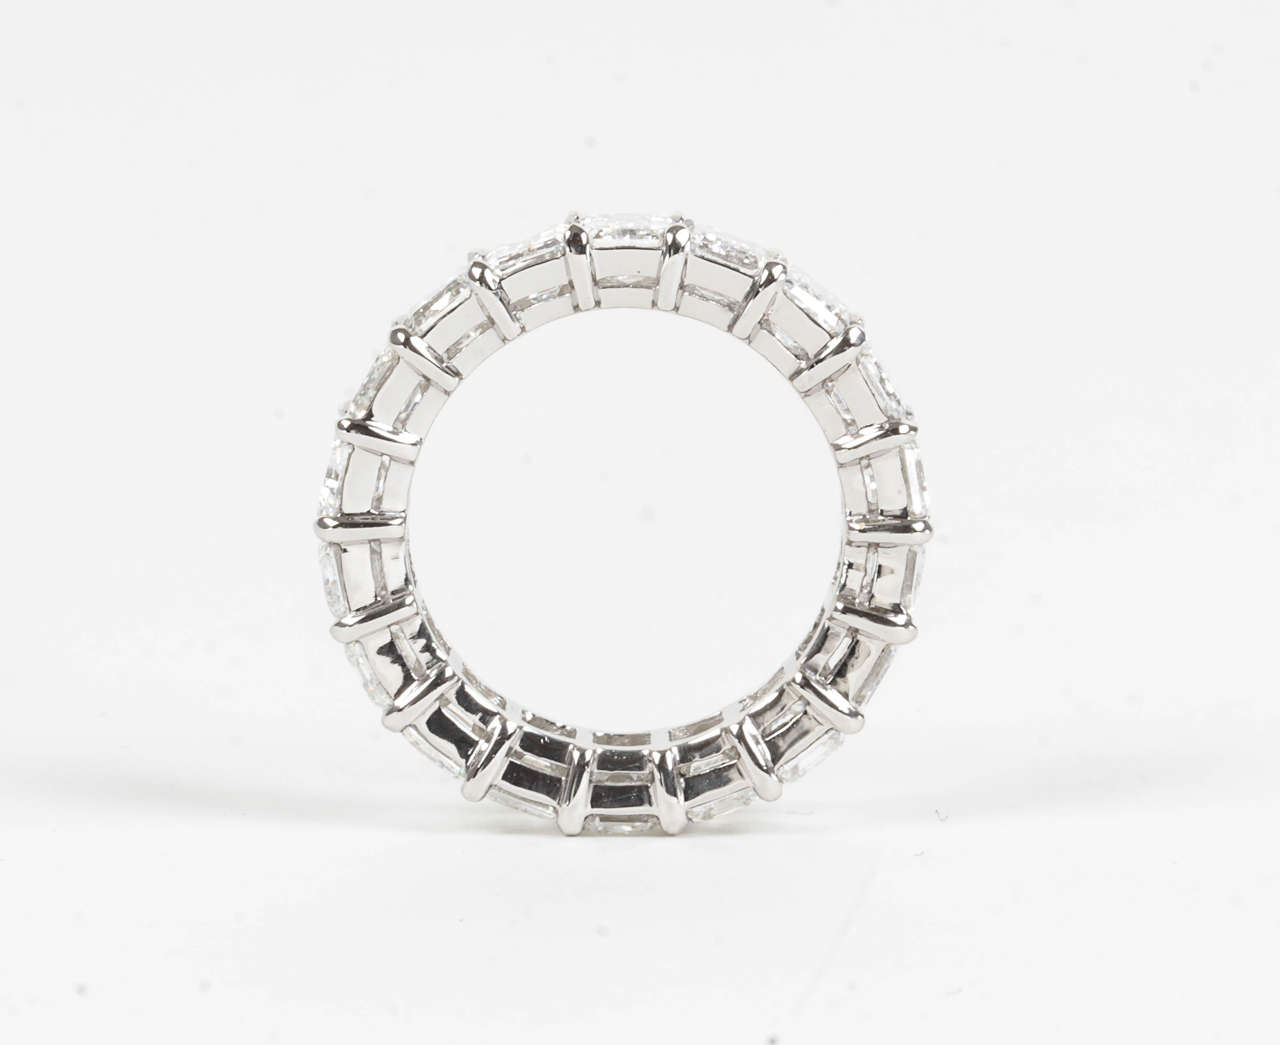 9 Carat Emerald Cut Diamond Platinum Eternity Band In New Condition For Sale In New York, NY